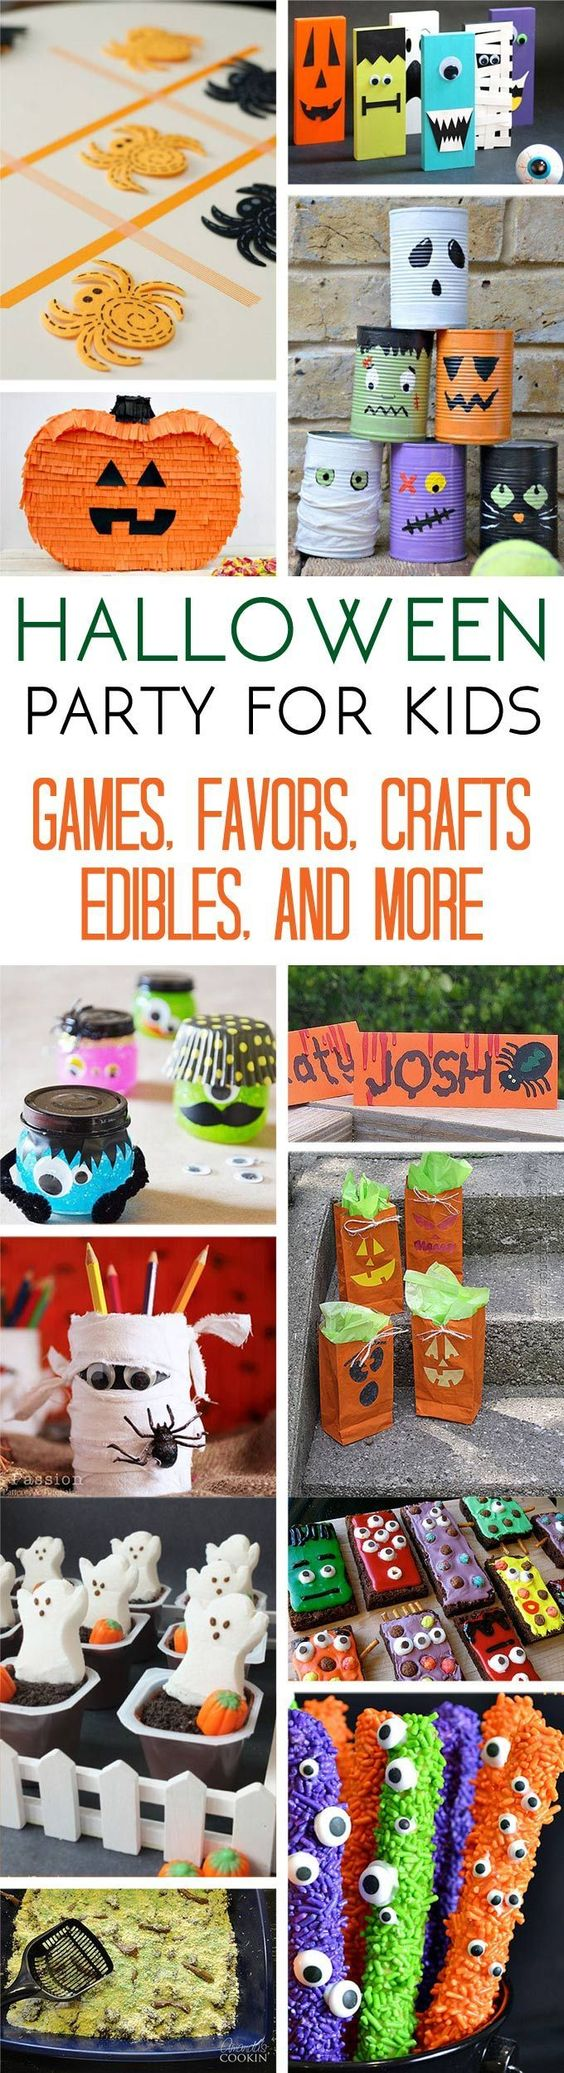 Hosting a Halloween party for kids? Armed with lots of Halloween party ideas you can host a fantastic bash that your littles with love. Great ideas for make & take crafts, spooky DIY decorations, homemade party favors and games, and lots of adorably delicious Halloween edible treats makes for a successful Halloween party for kids.: